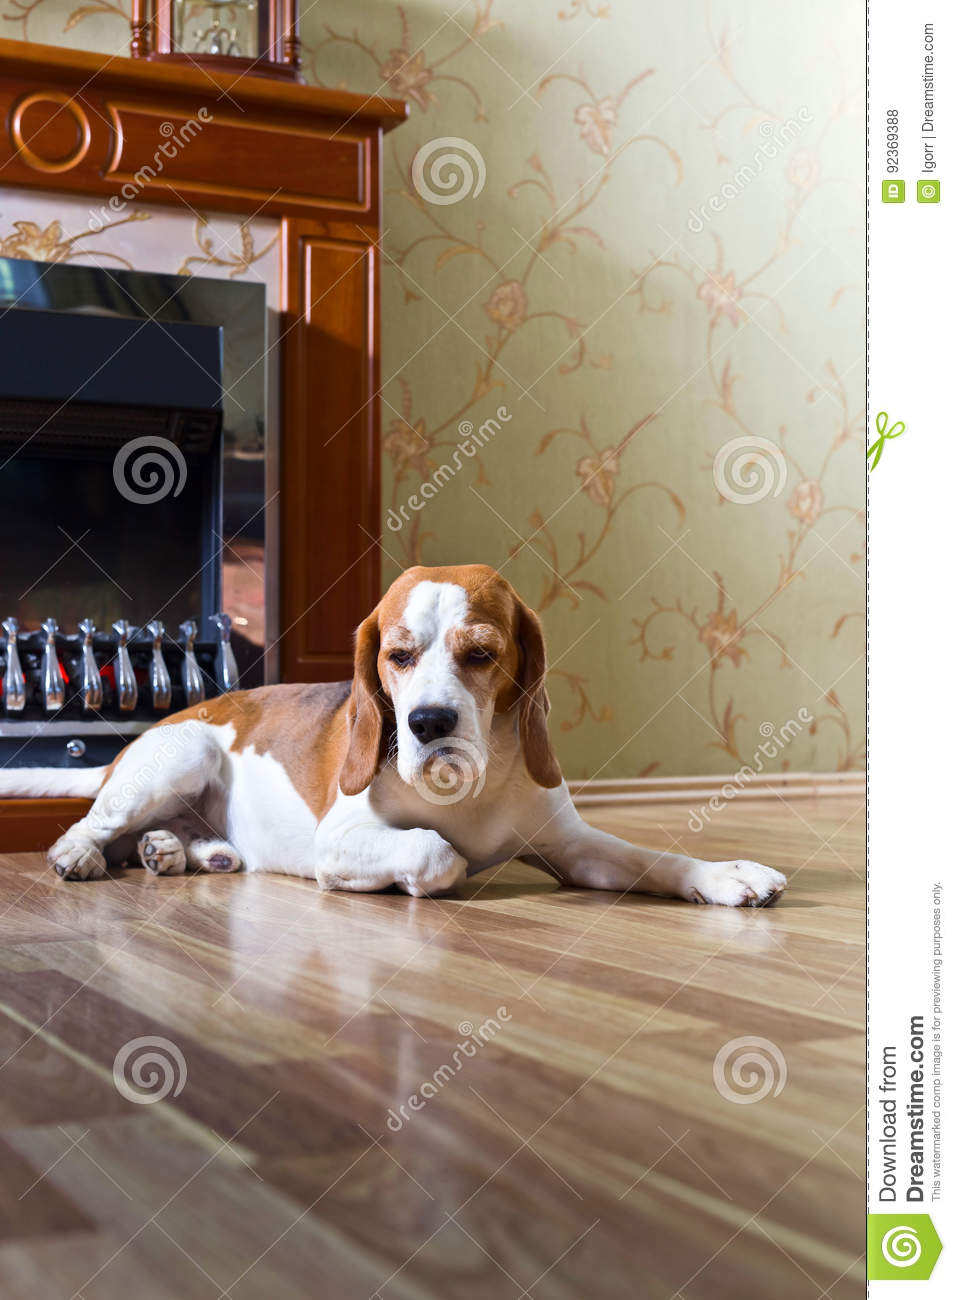 Beagle on the wooden floor near the fireplace .